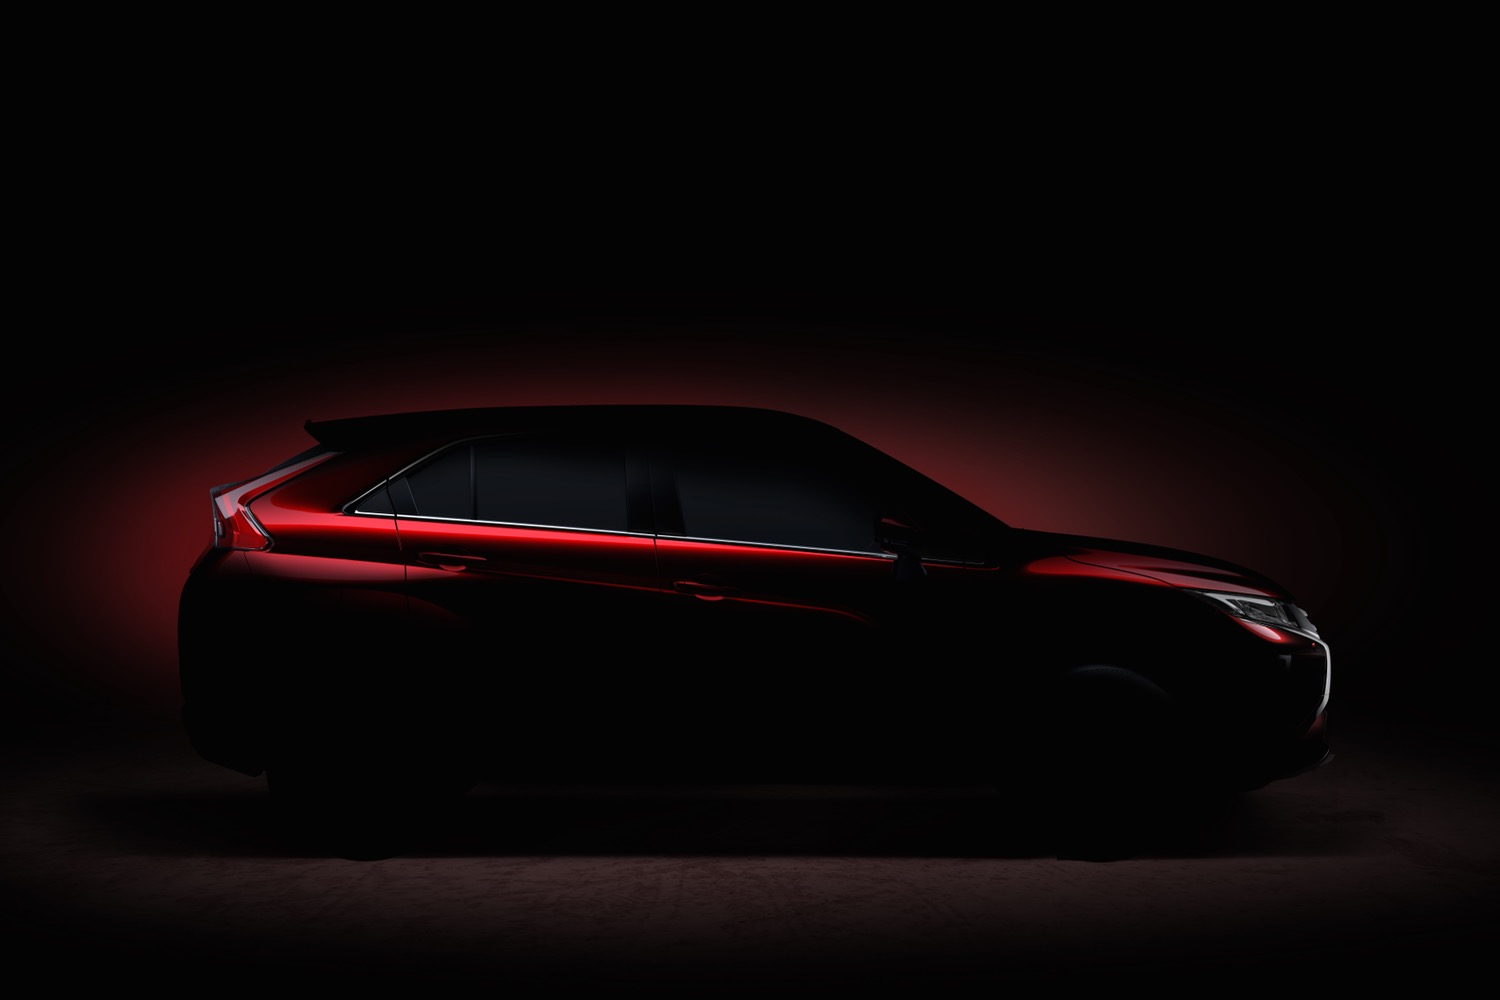 Rumored Mitsubishi Eclipse Teases Before 2017 Geneva Auto Show Appearance